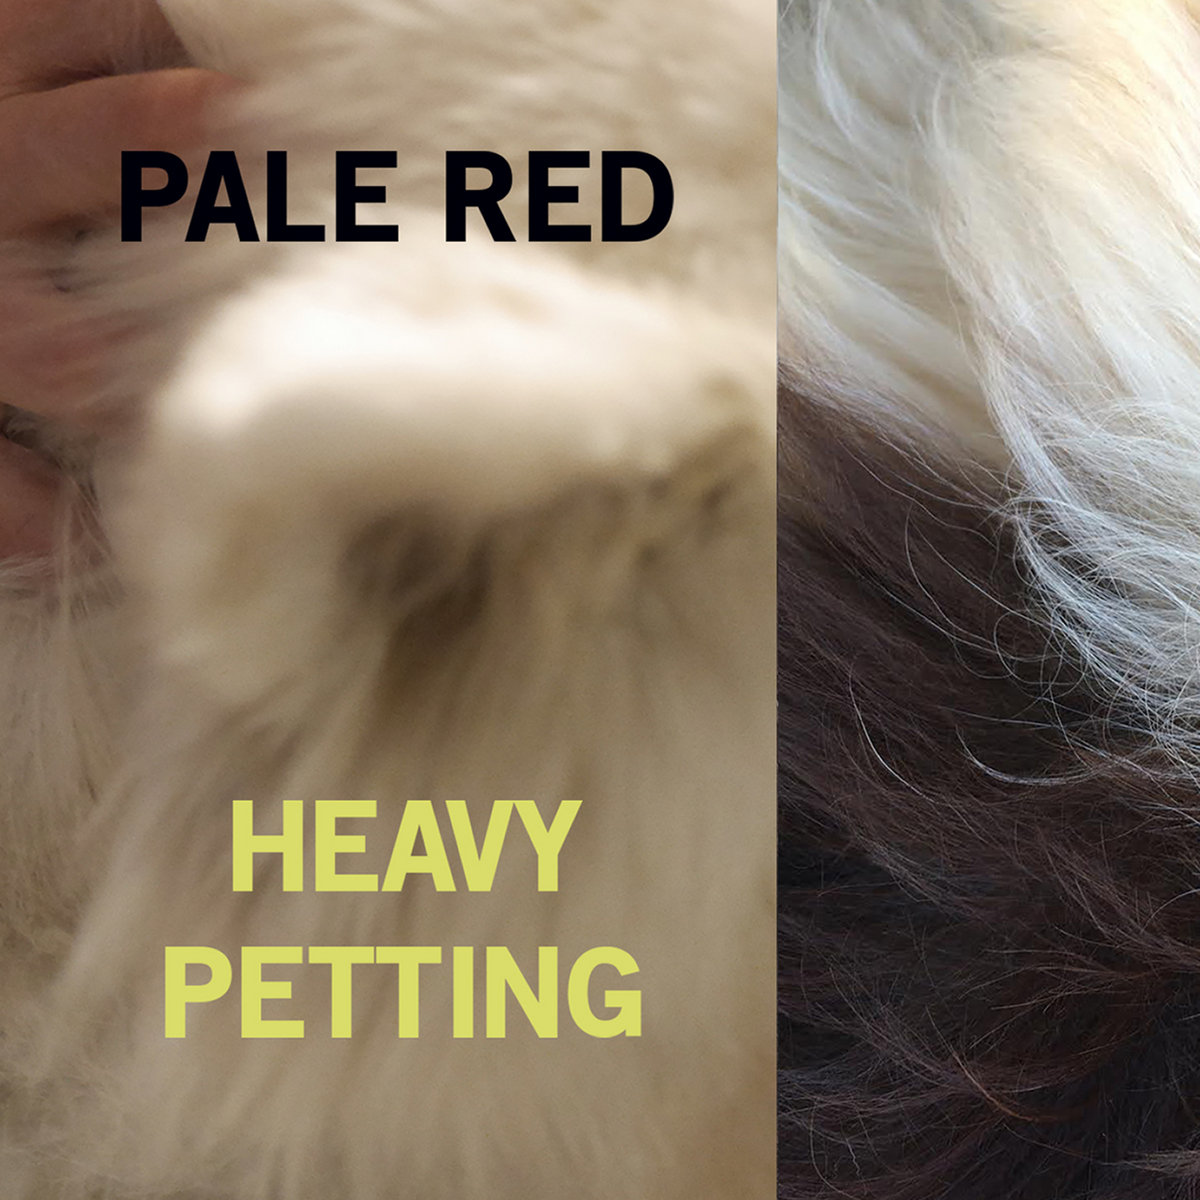 heavy petting pale red